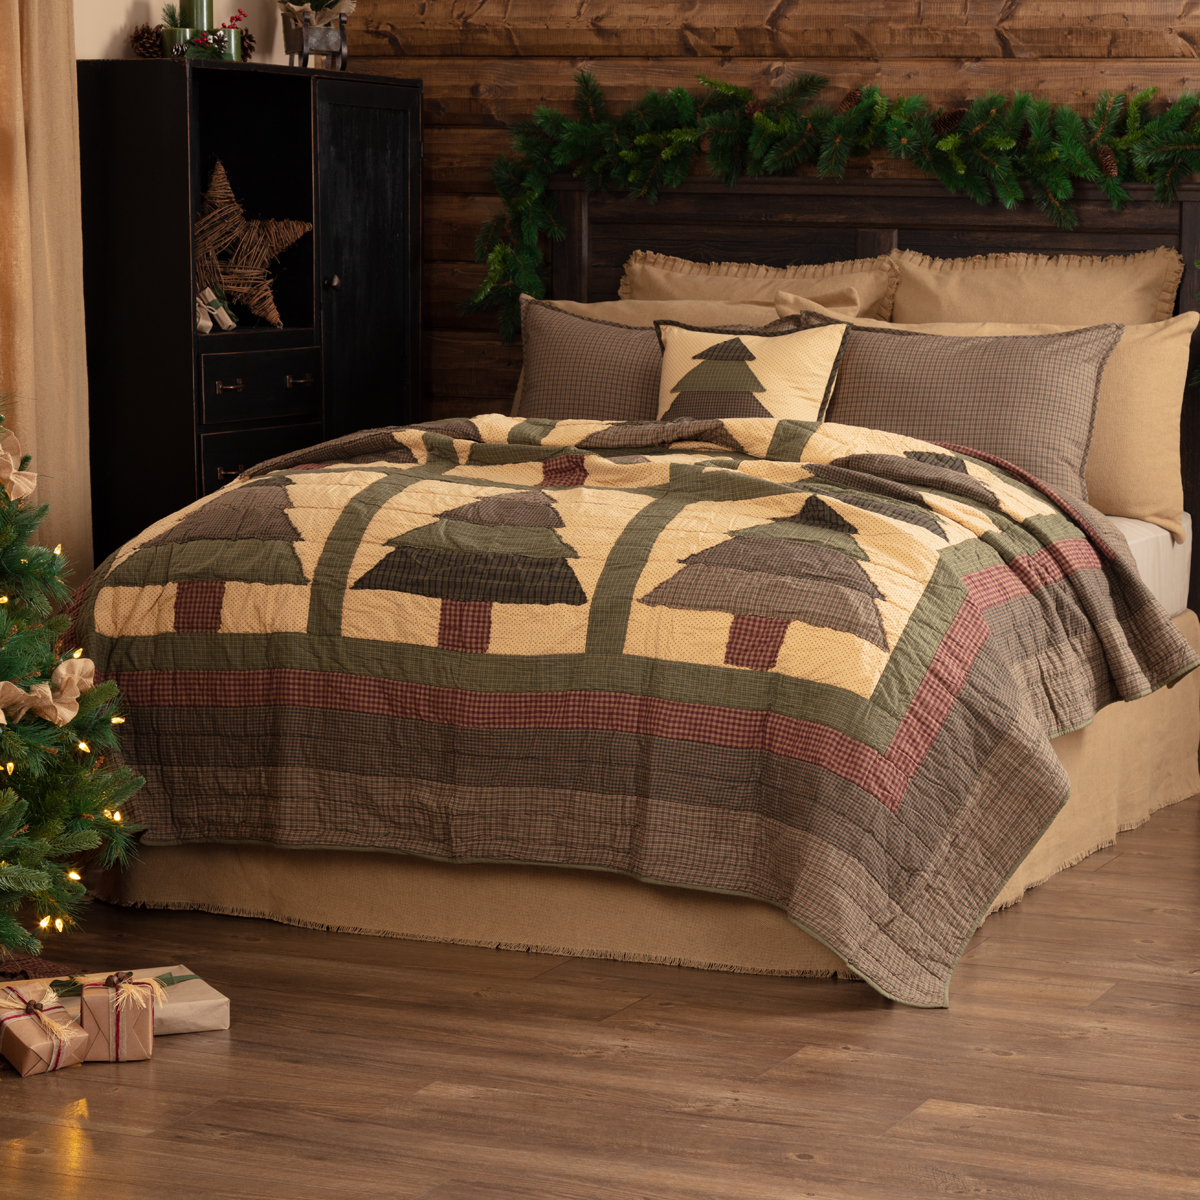 Sequoia Luxury King Quilt 120Wx105L